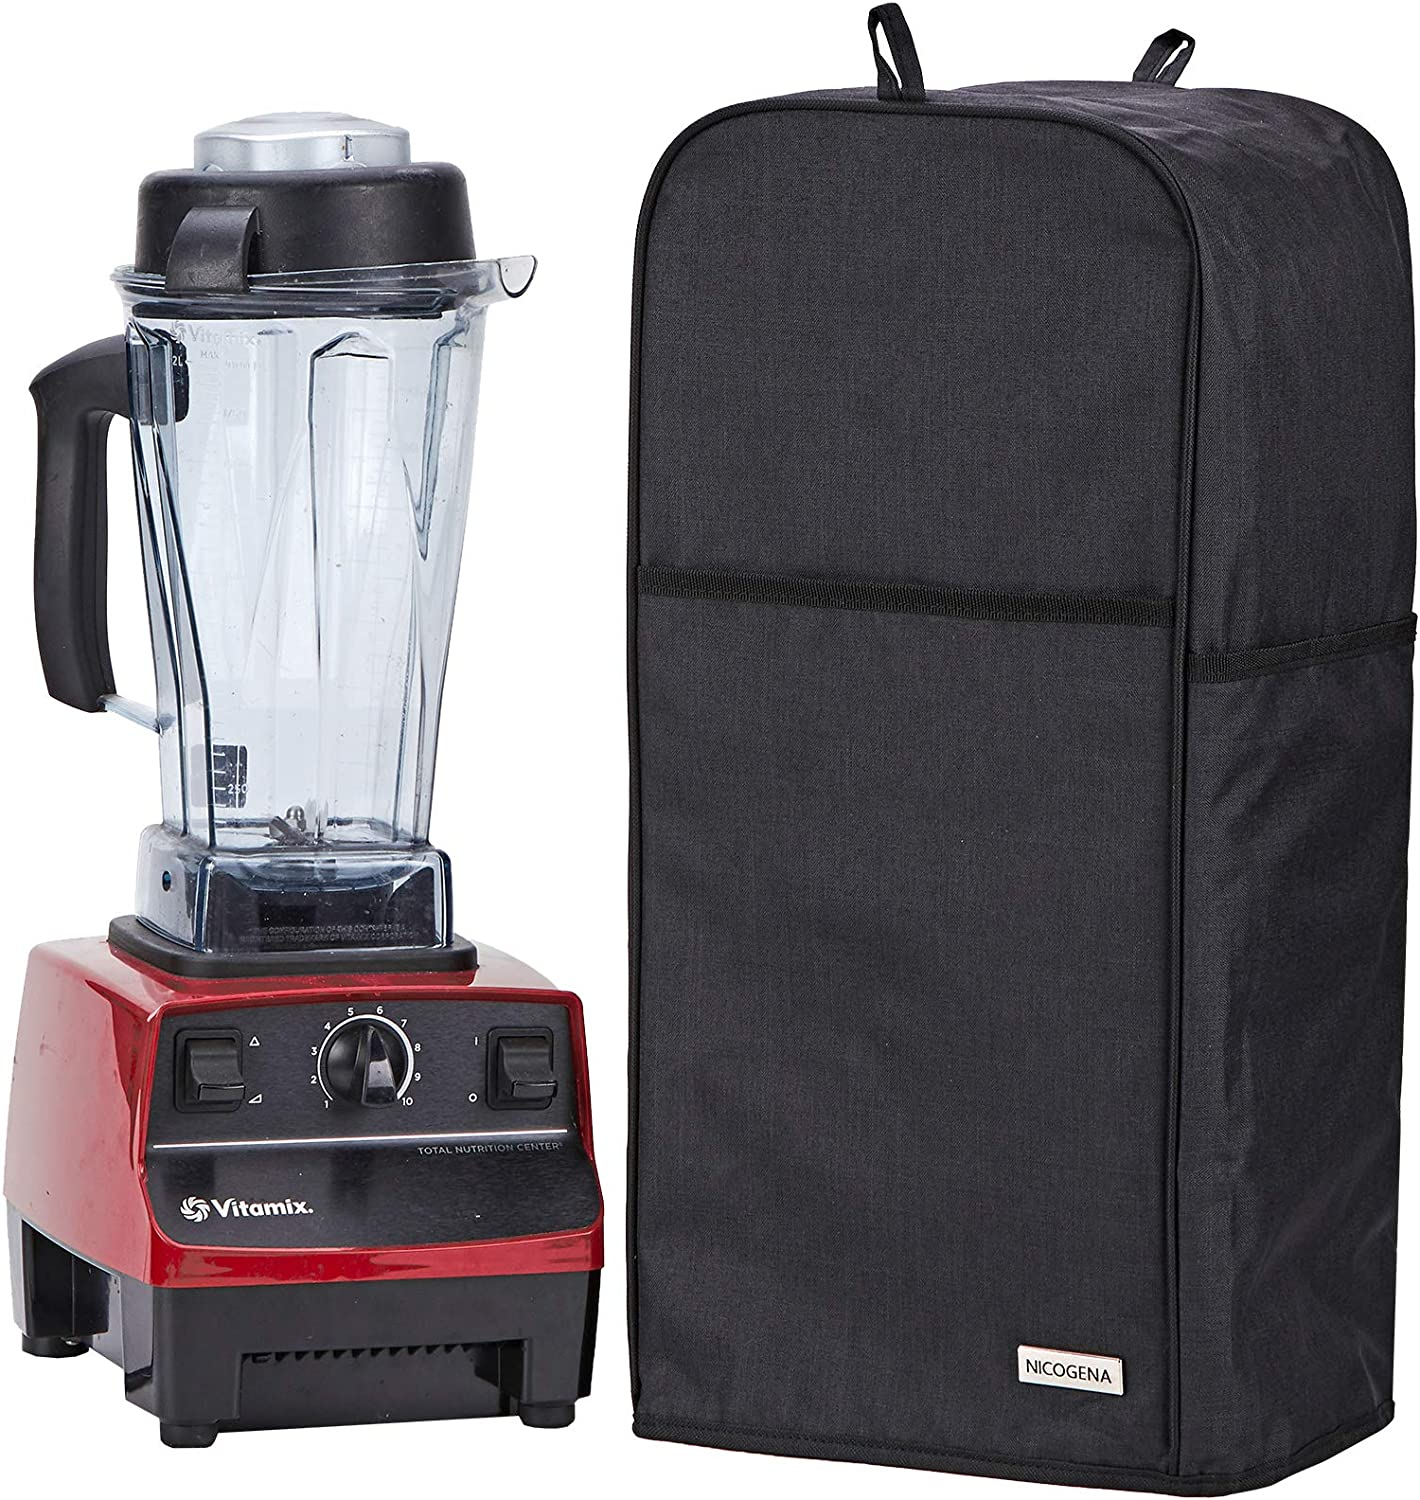 NICOGENA Blender Dust Cover with Accessory Pocket Compatible with Vitamix Classic C-series 5200, Turboblend, Large, Black